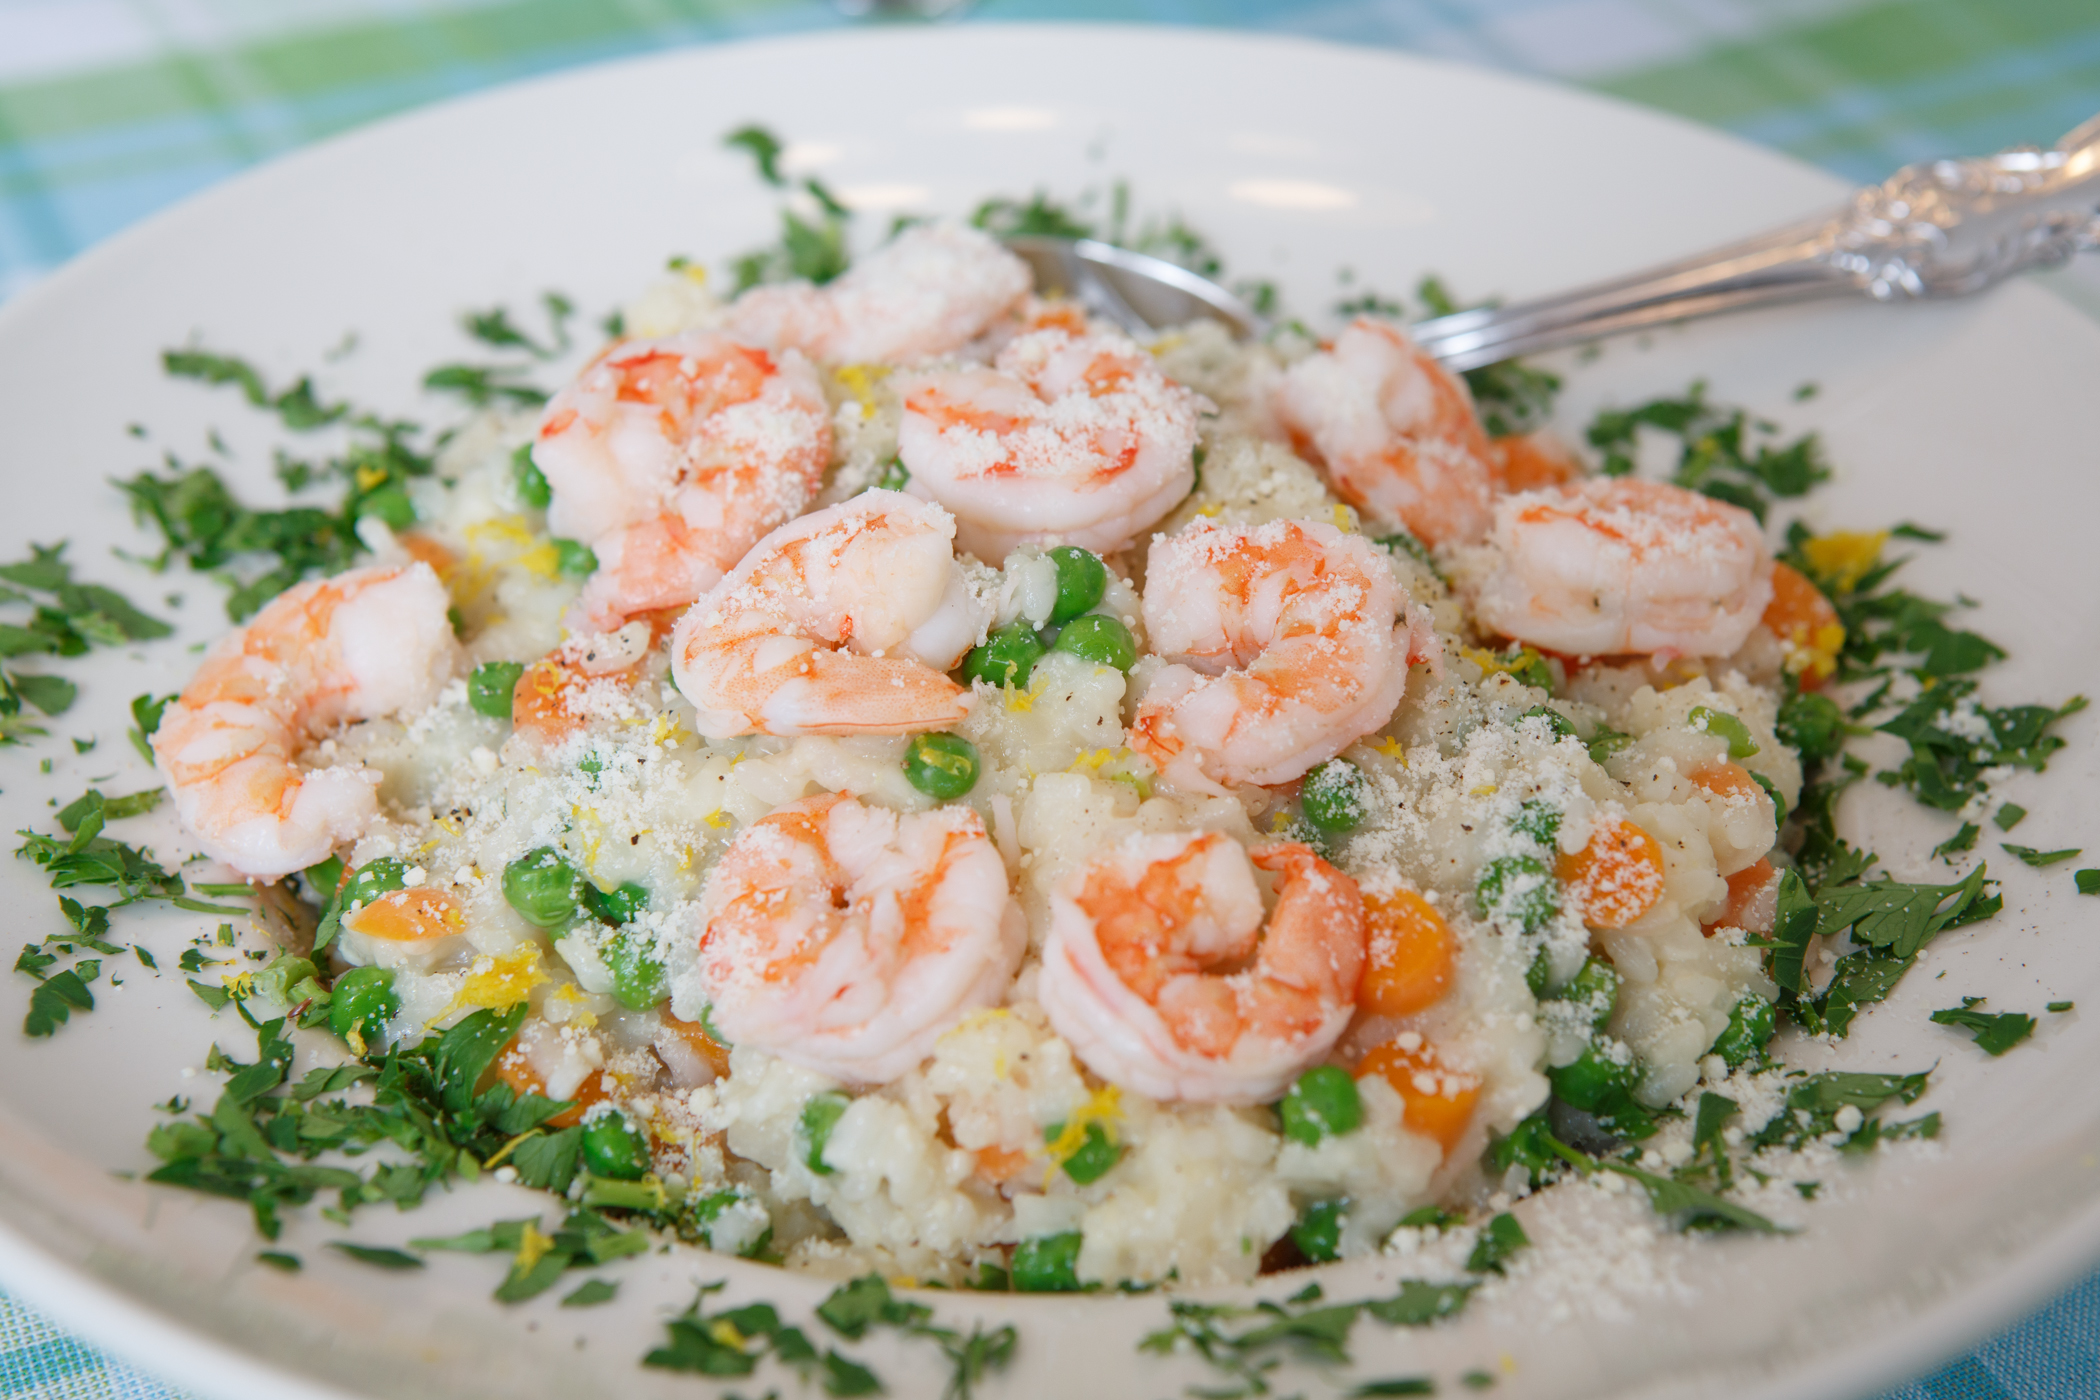 Peas and Carrots Risotto with Shrimp